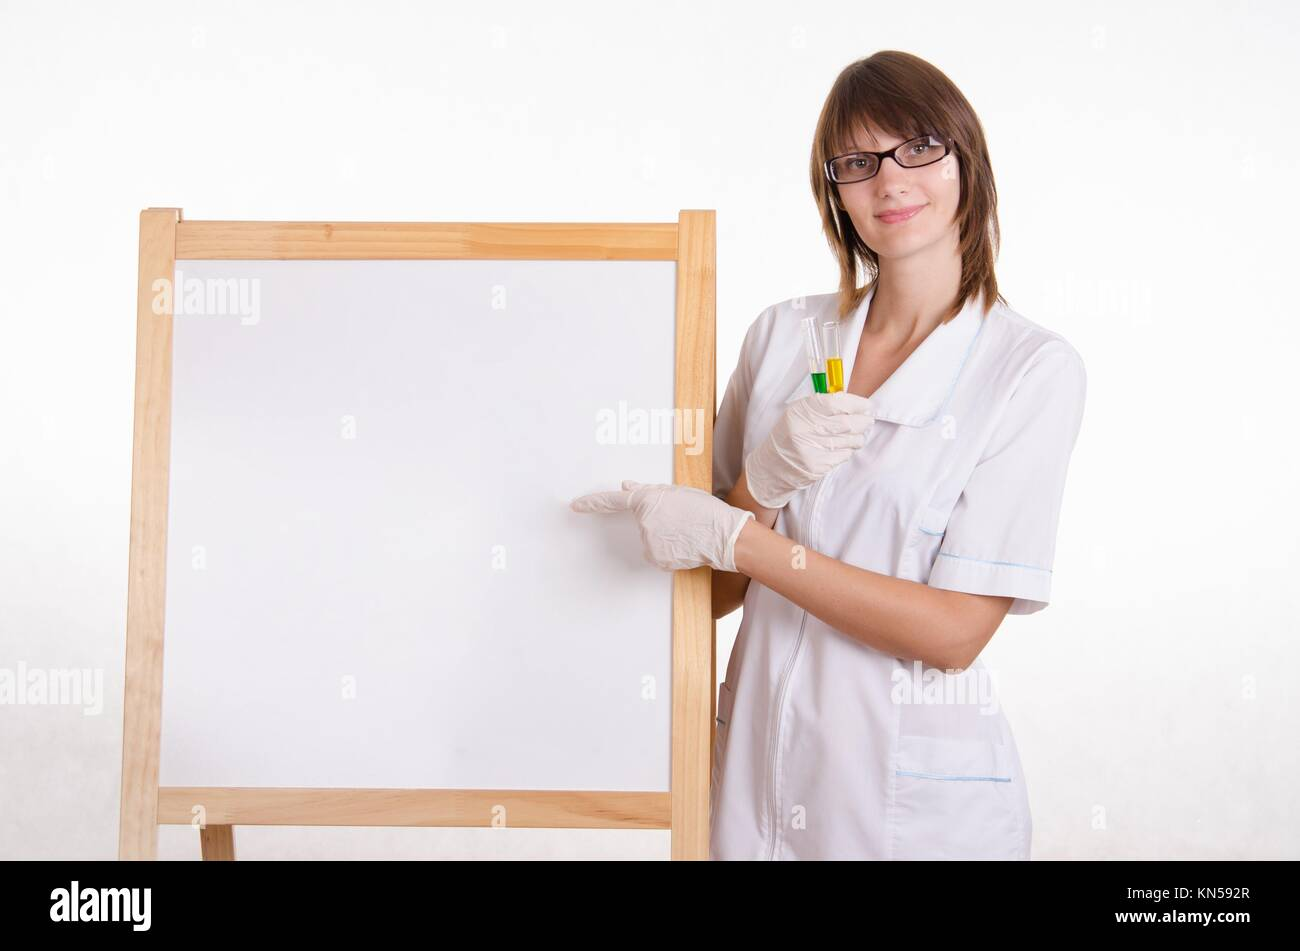 Chemist with test tubes stands at the blackboard with advertising. - Stock Image